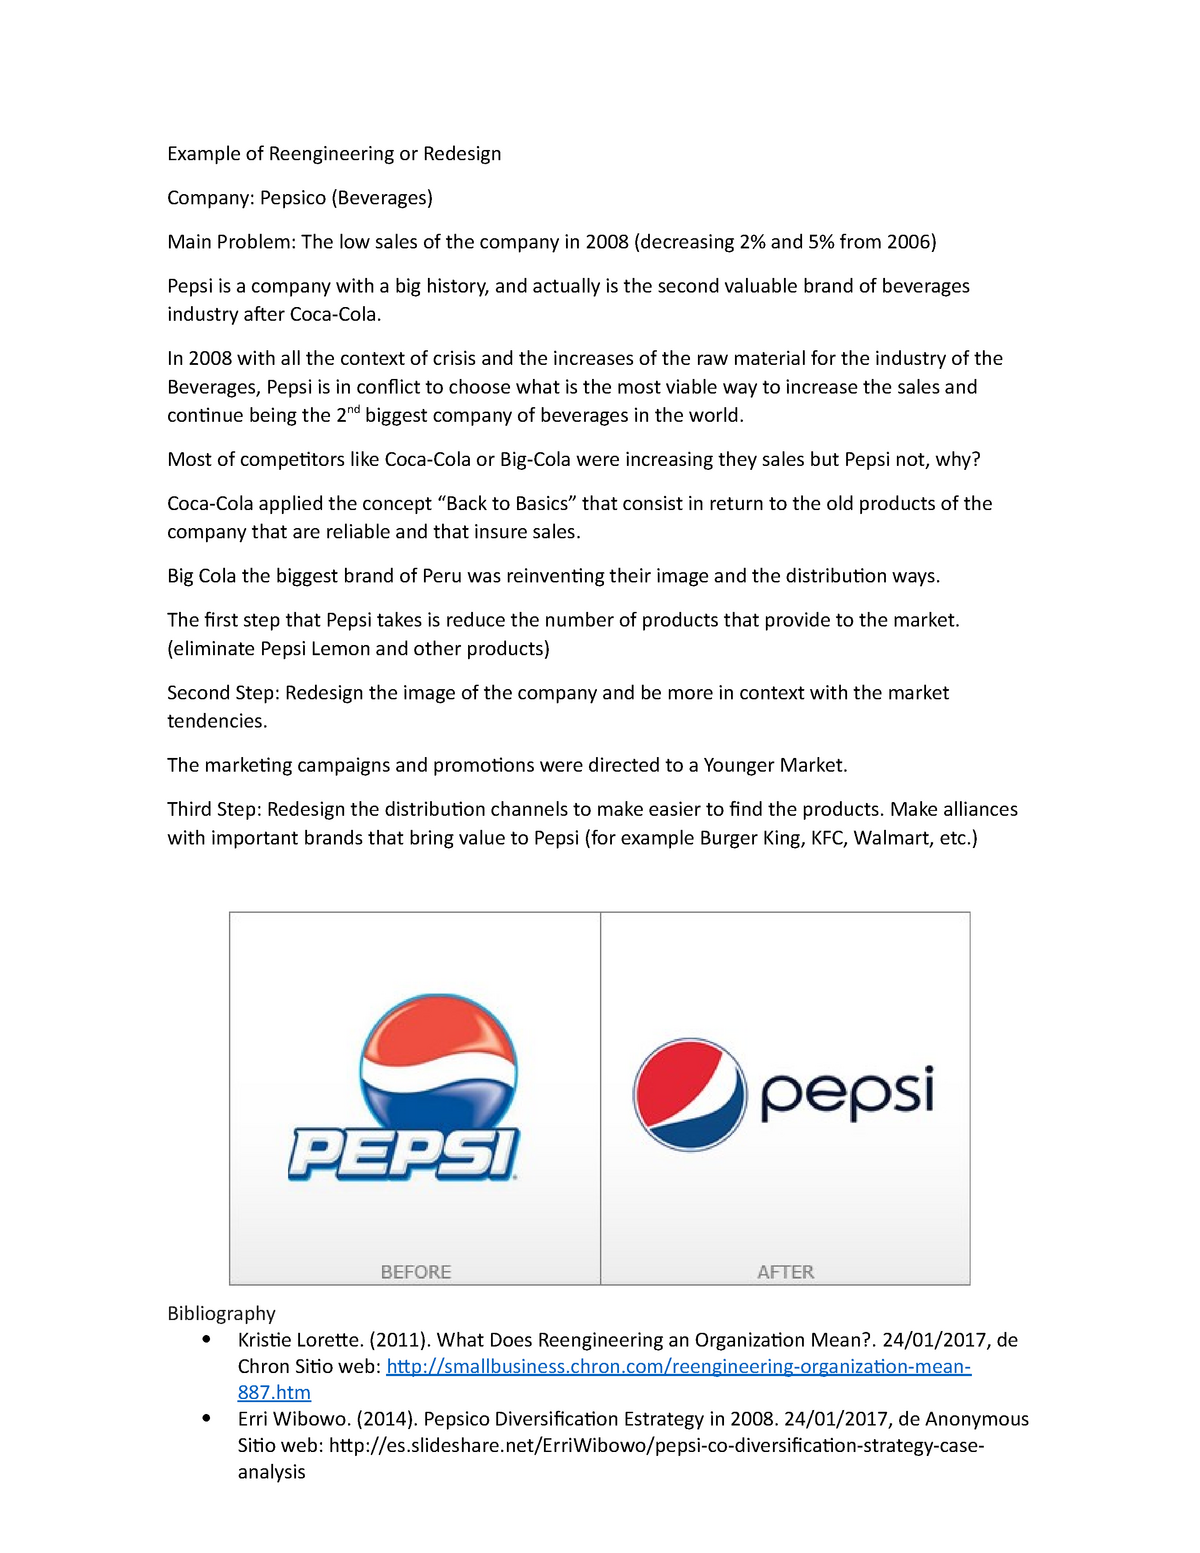 Example of Reengineering or Redesign Pepsi - - UP - StuDocu